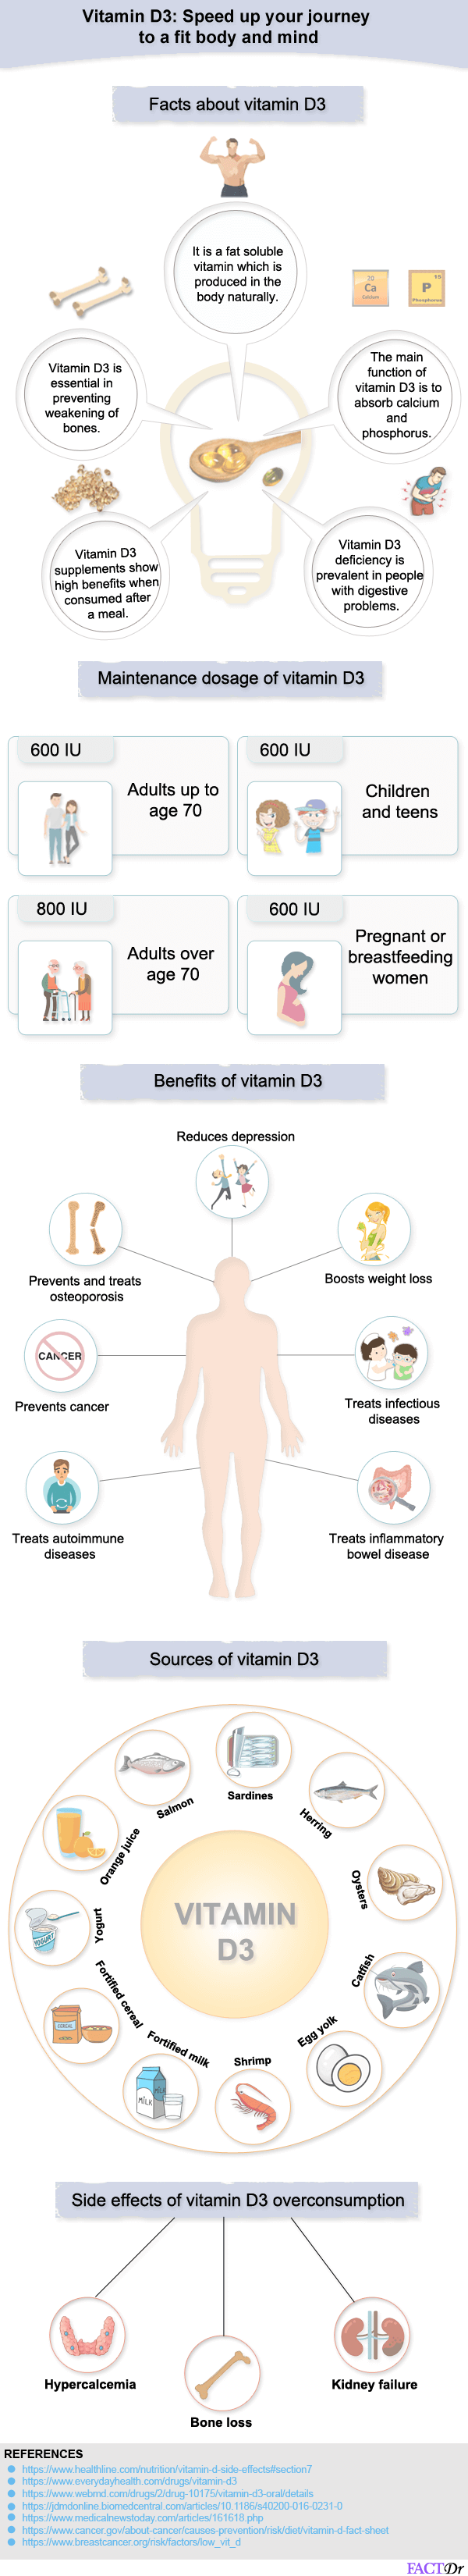 Vitamin D3: Speed up your journey to a fit body and mind